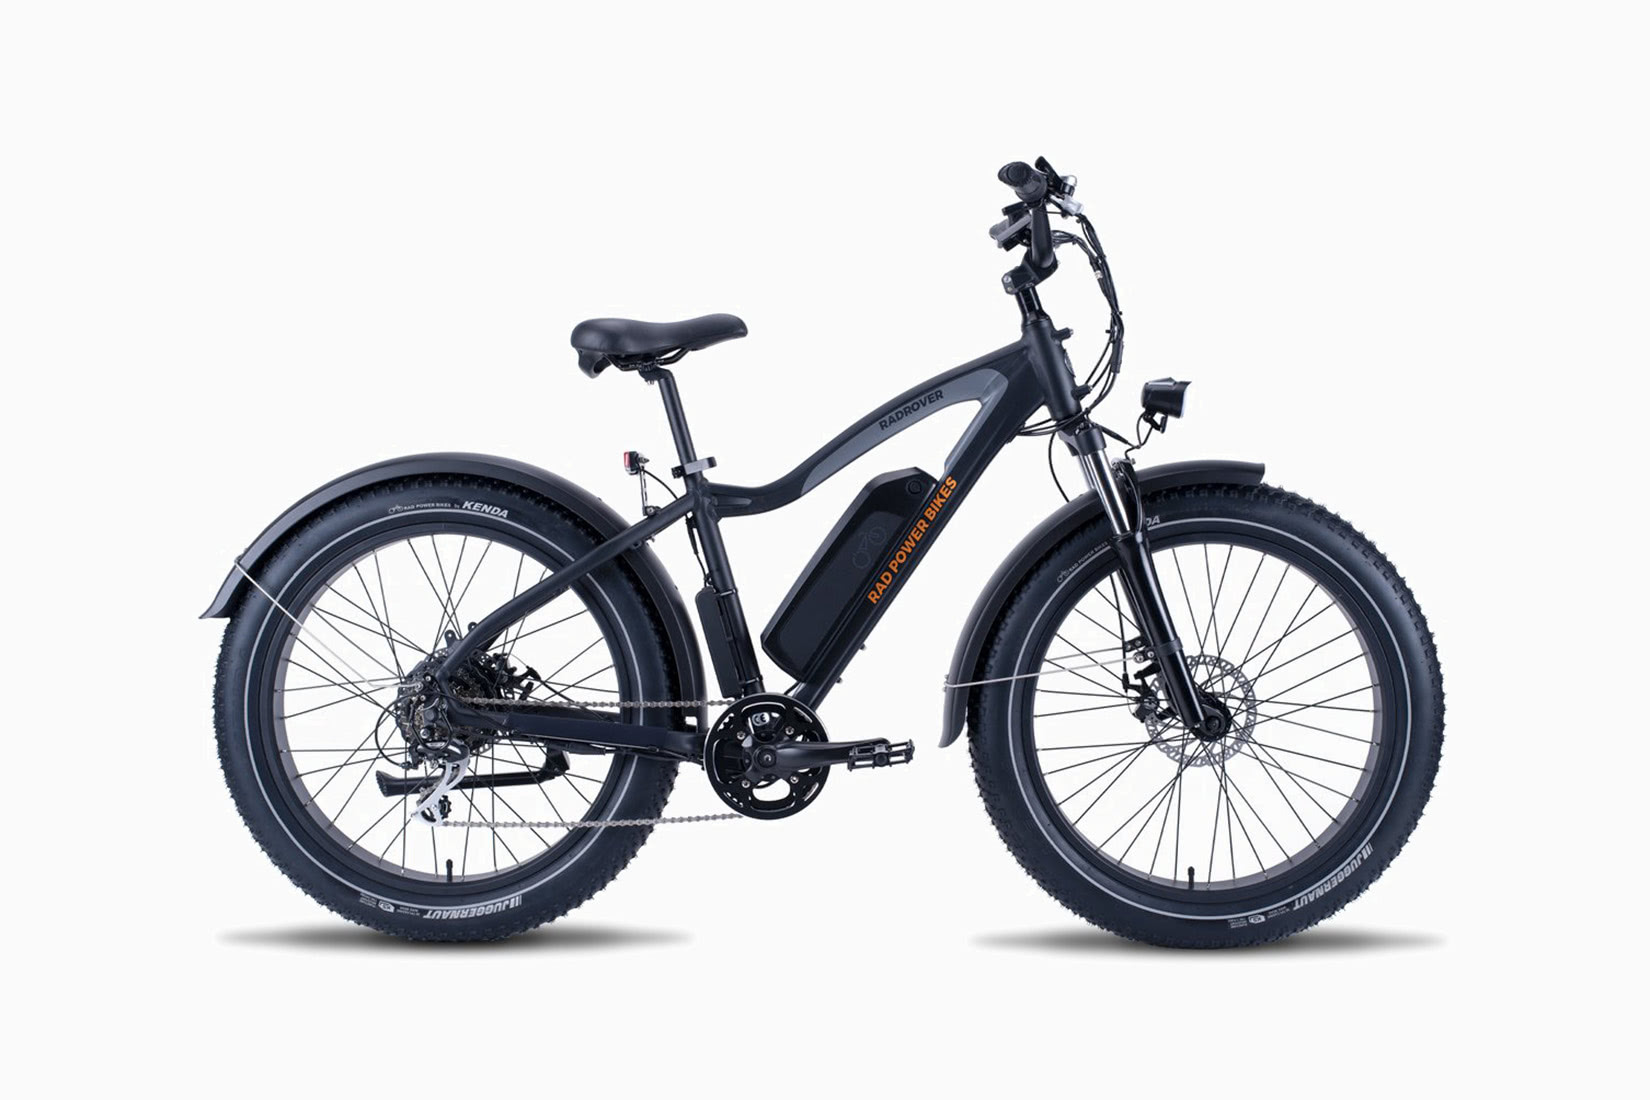 rad power bikes review radrover luxe digital